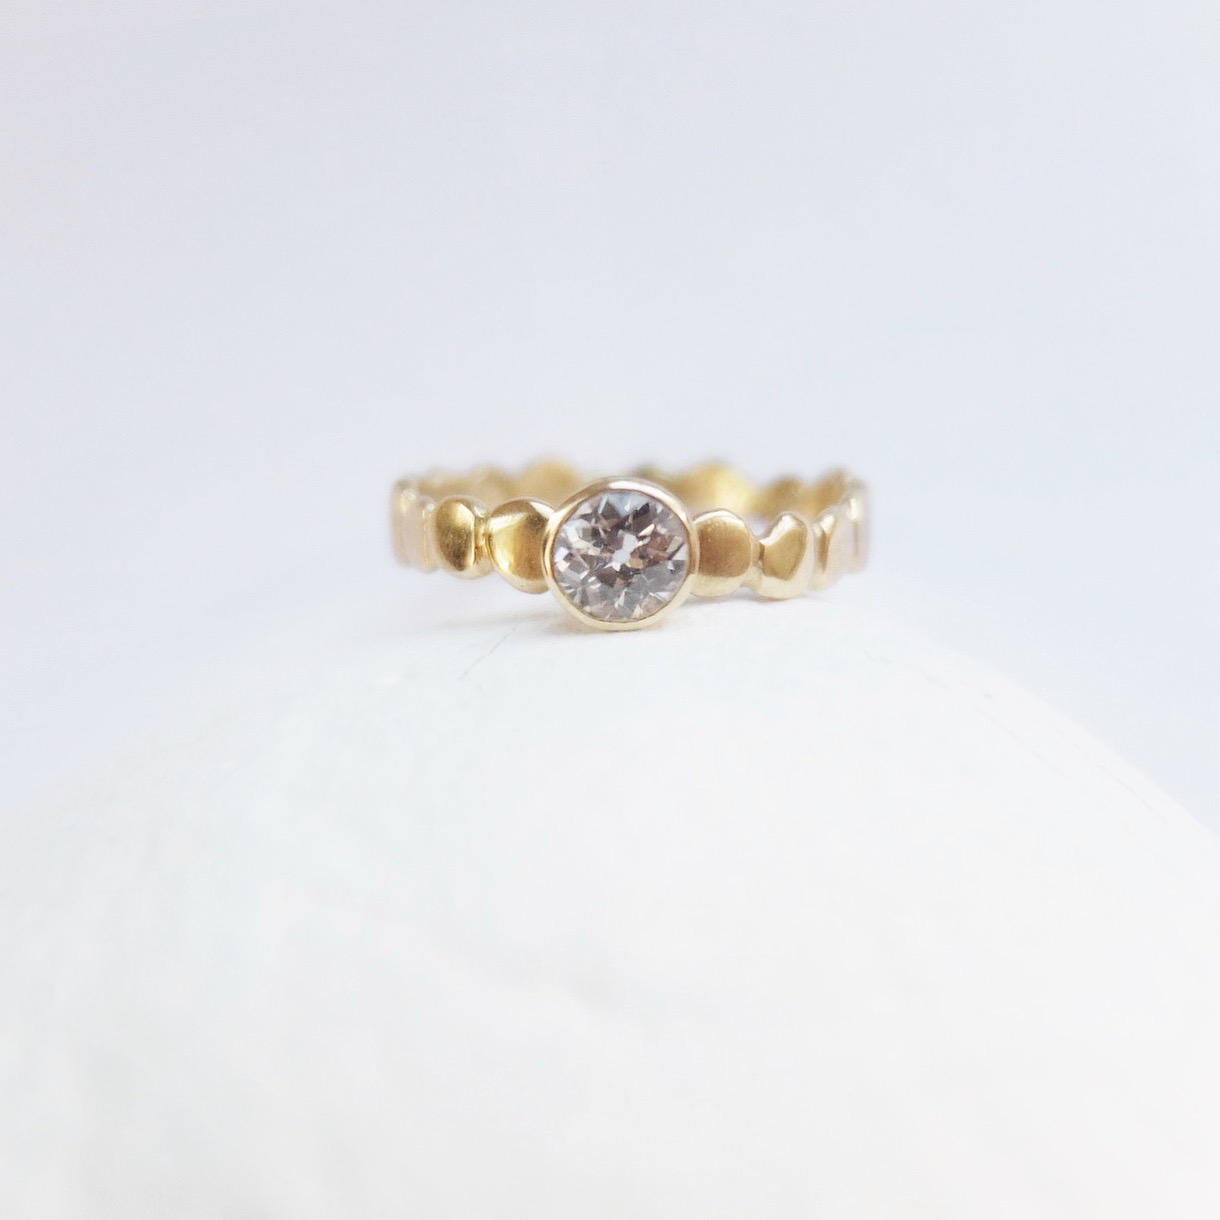 18ct yellow gold and 0.3ct 0.4ct diamond engagement rings ring pebble pebbles alternative contemporary handmade in Exeter Devon UK jasmine bowden modern.jpg